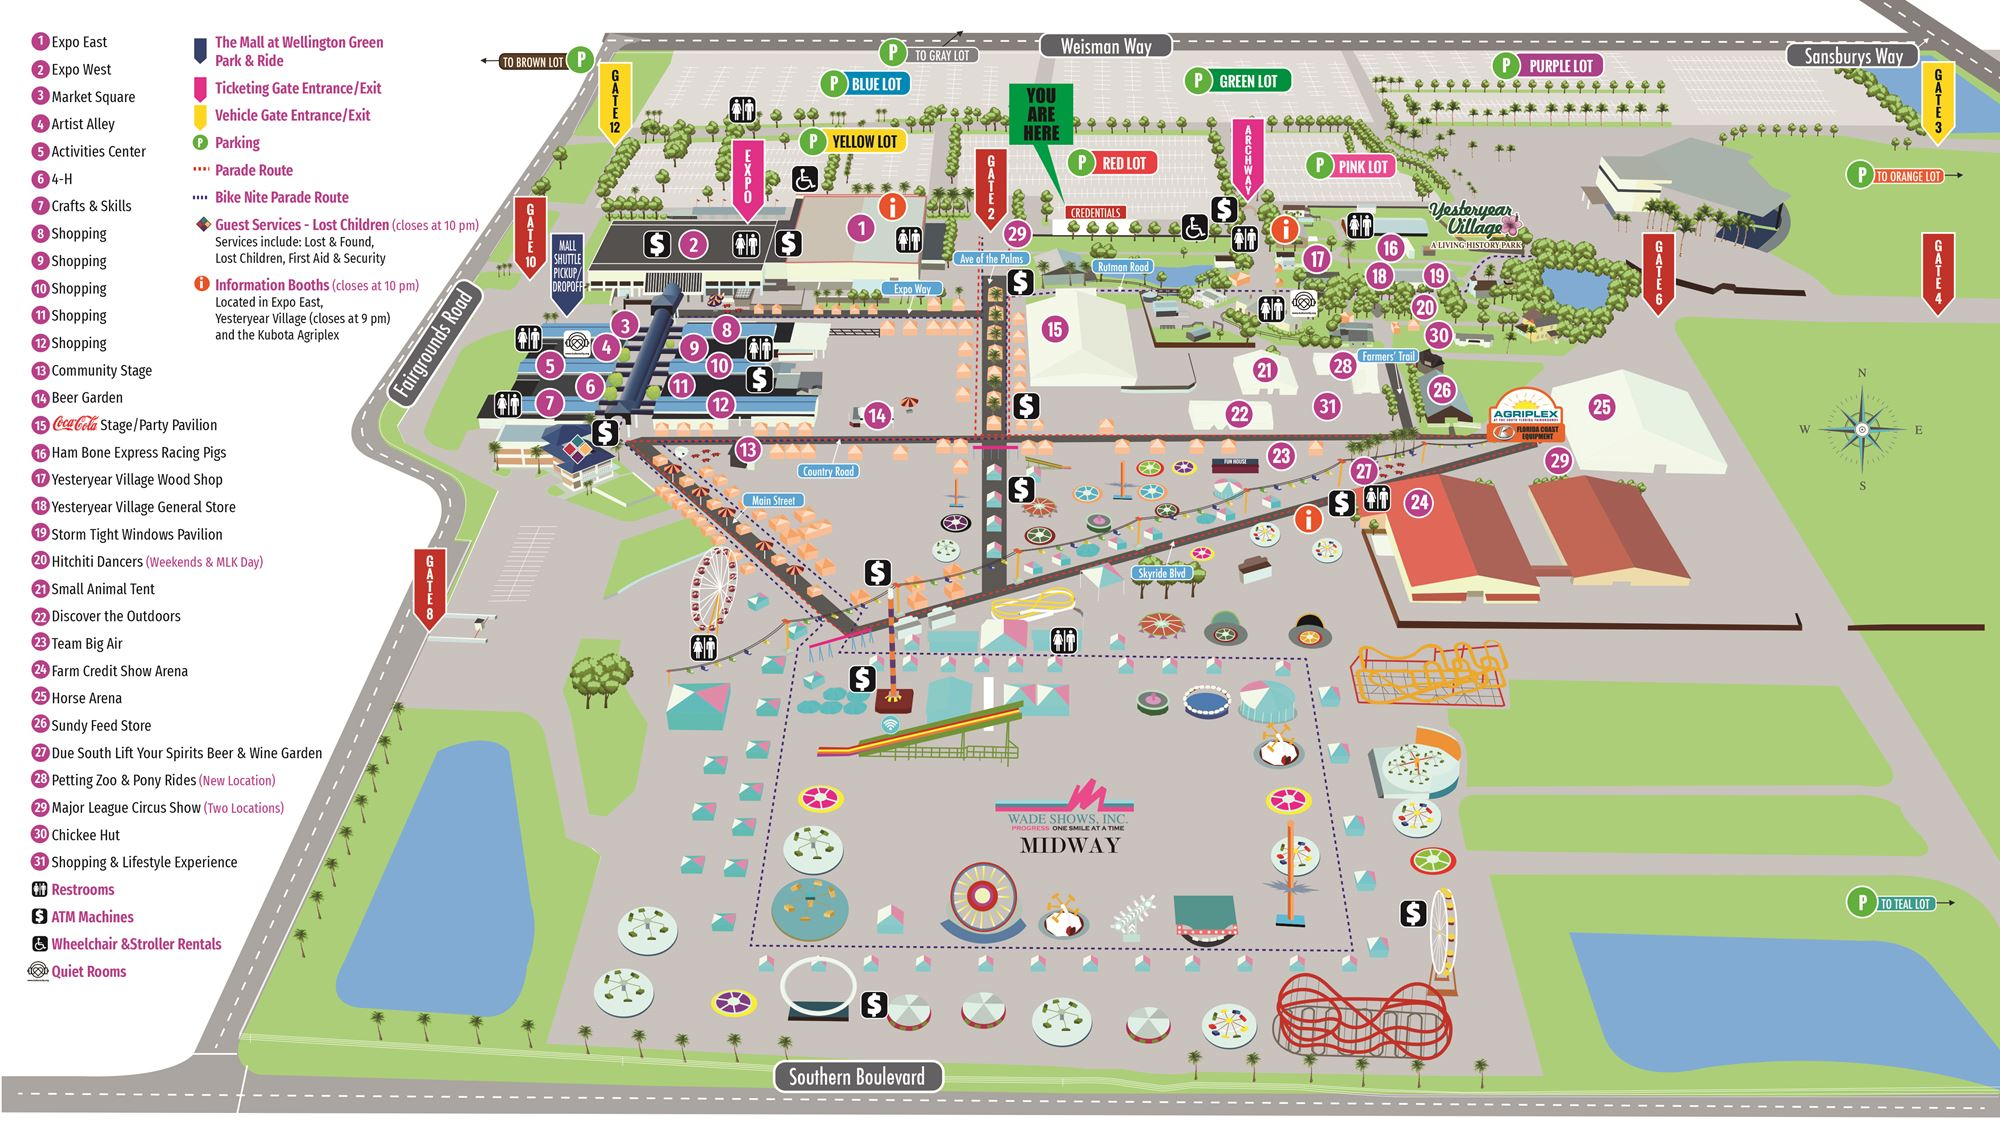 Fairgrounds Map Within South Florida Fairgrounds Events Calendar